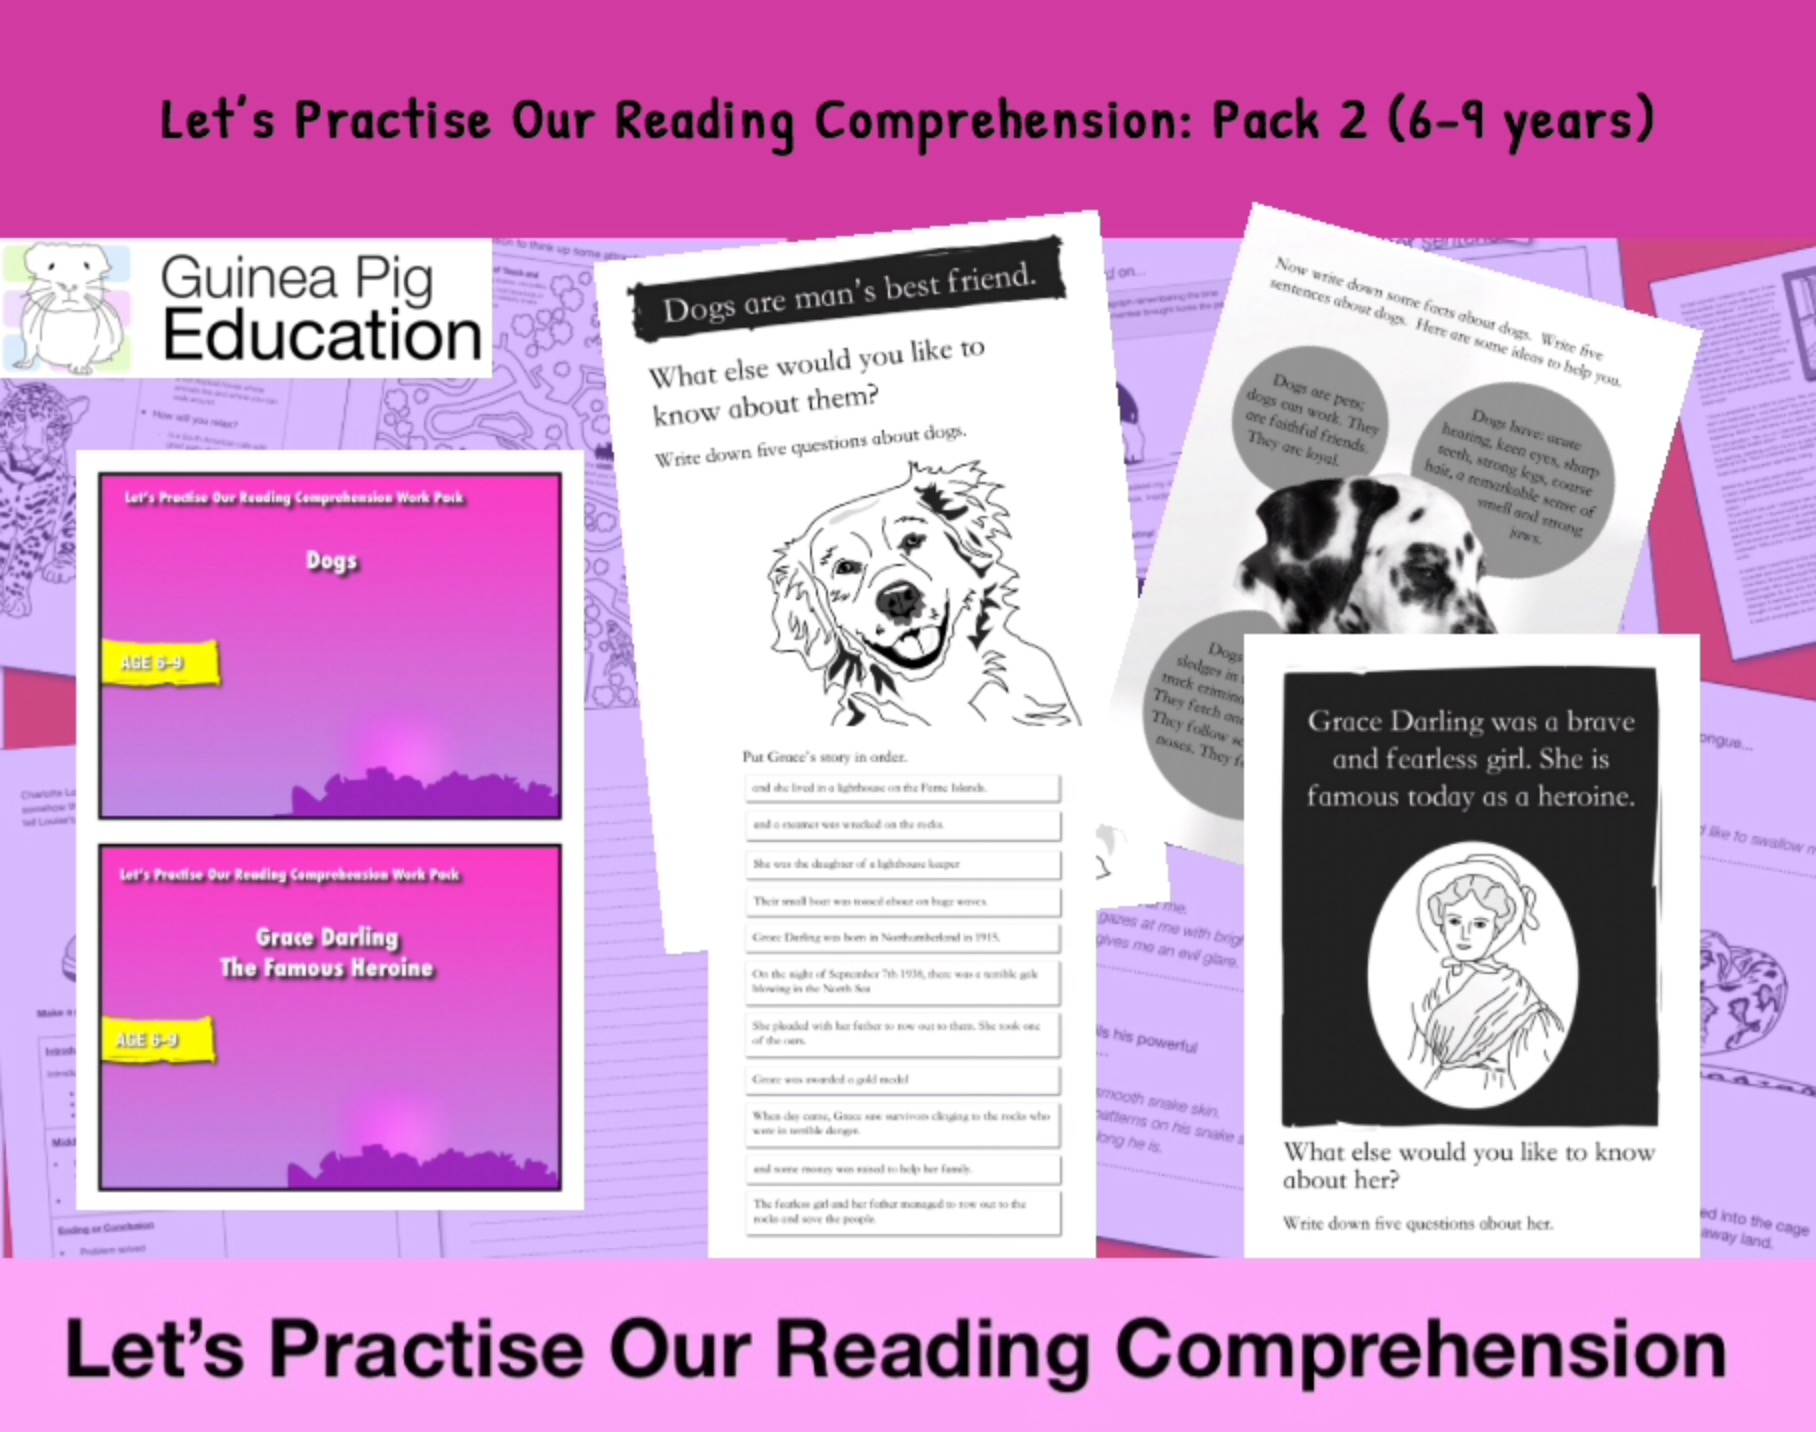 Let's Practise Our Reading Comprehension: Pack 2 (6-9 years)